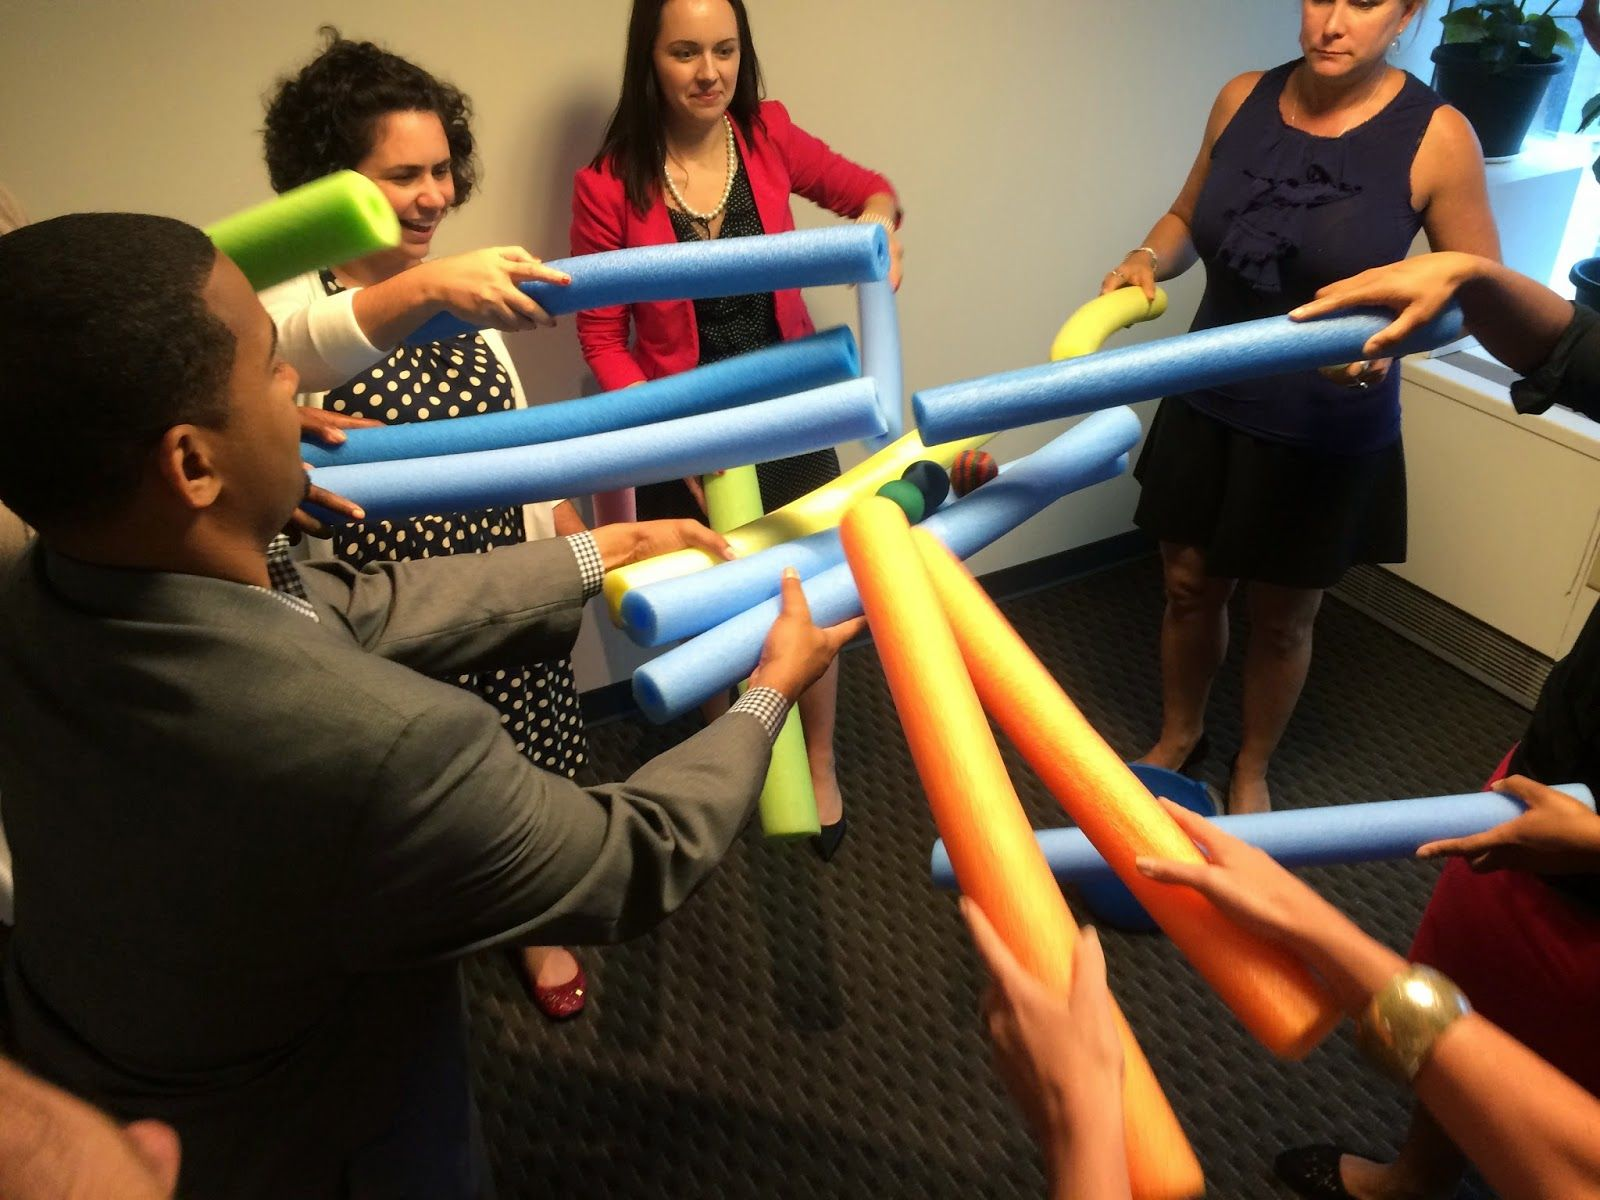 Team Building event with Syrus Team building activities